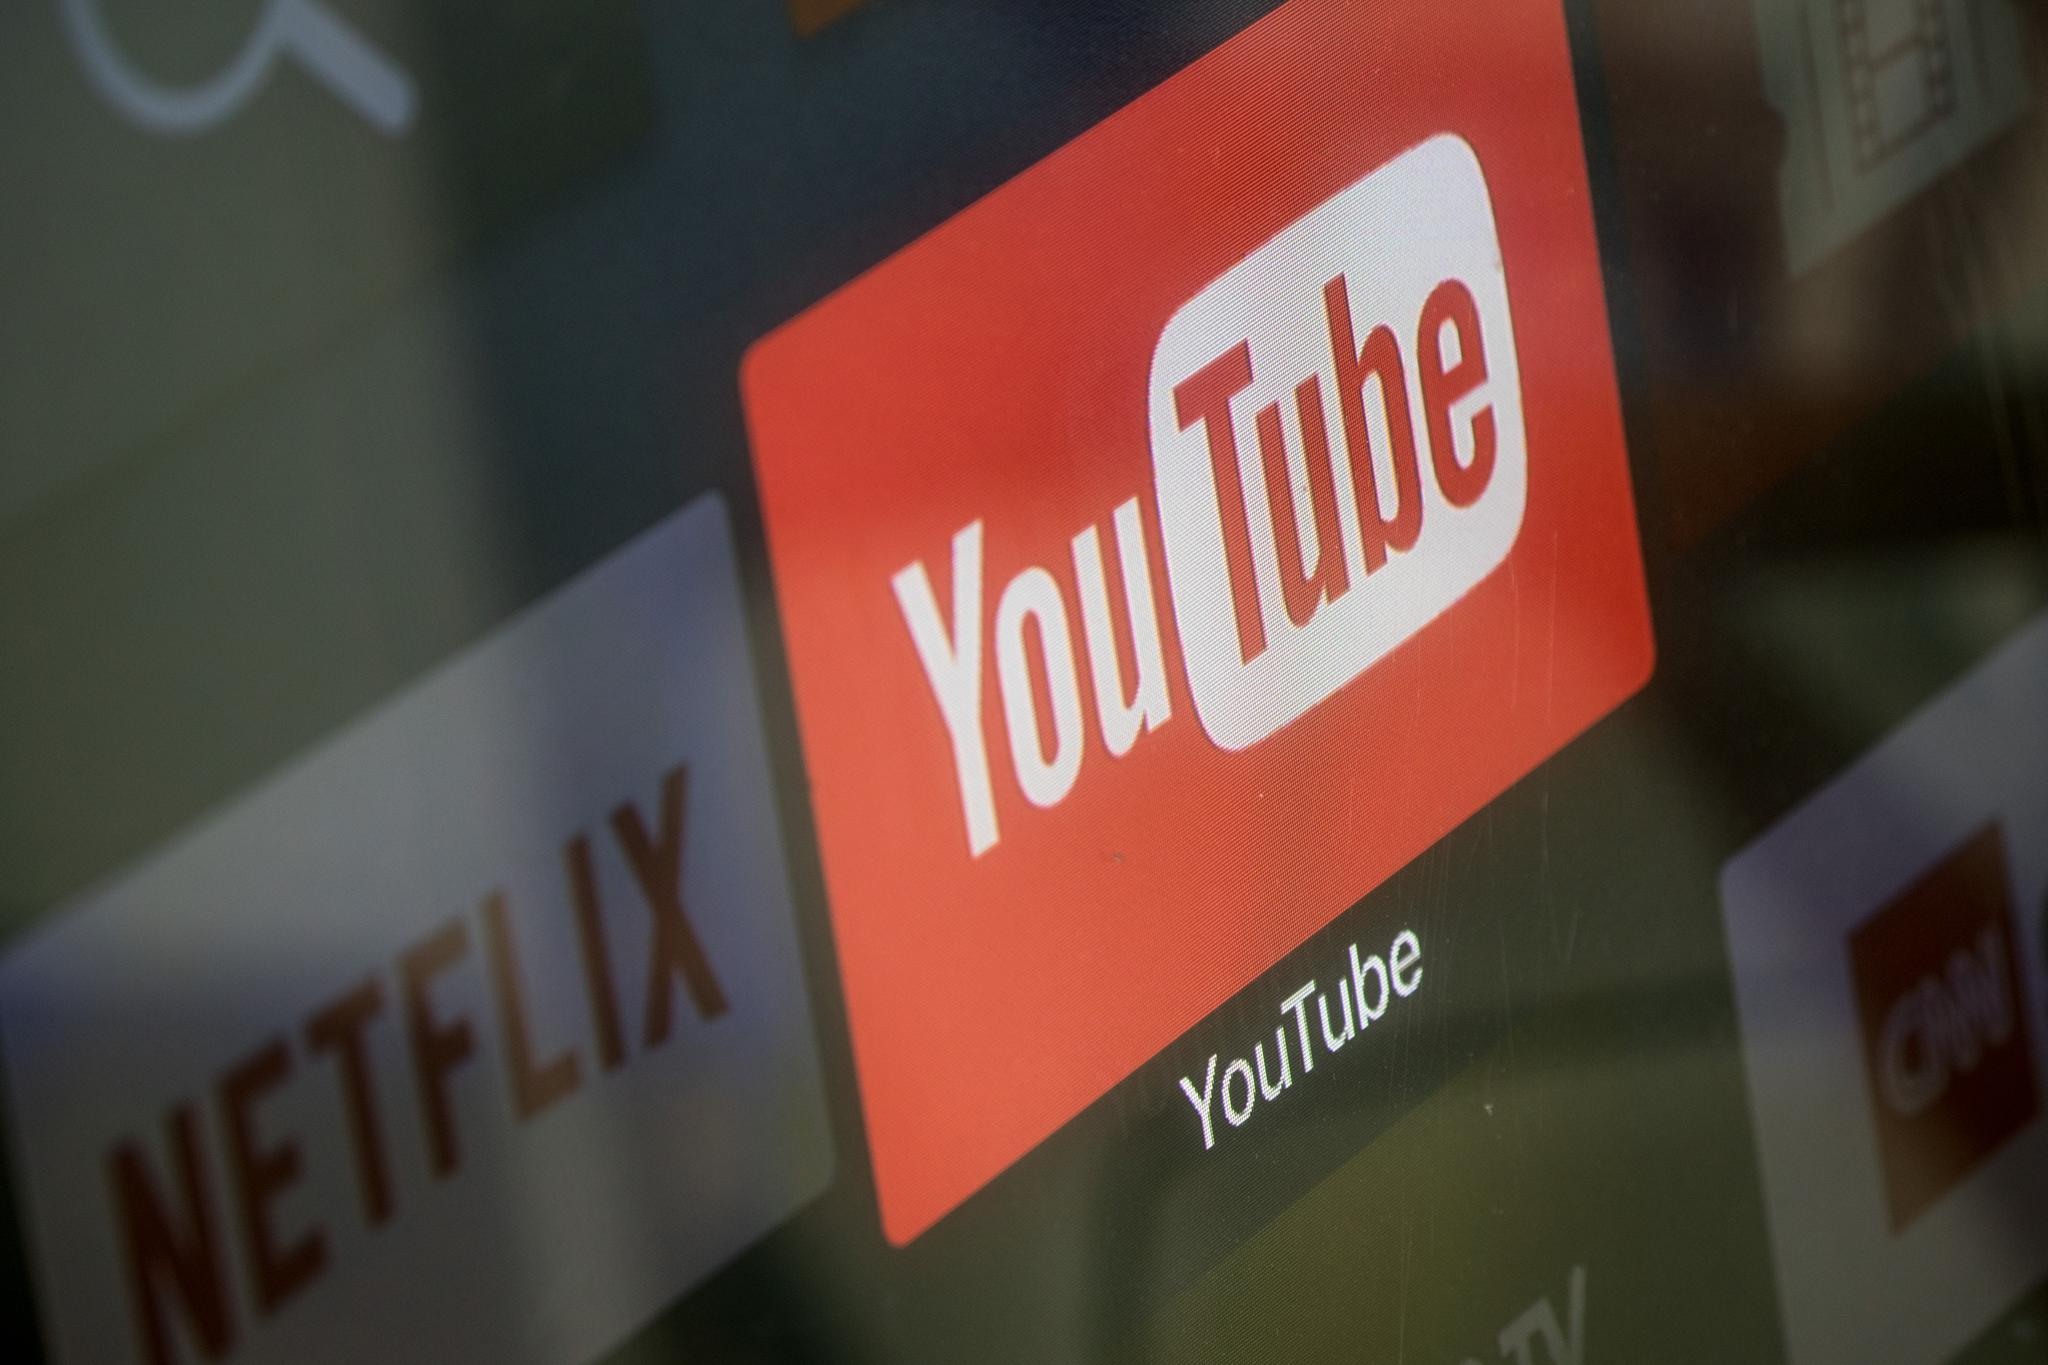 The YouTube and Netflix app logos are seen on a television screen on March 23, 2018 in Istanbul, Turkey. YouTube has drawn criticism for its role in spreading misinformation and conspiracy theories, but the platform is trying out new strategies to promote reliable sources.